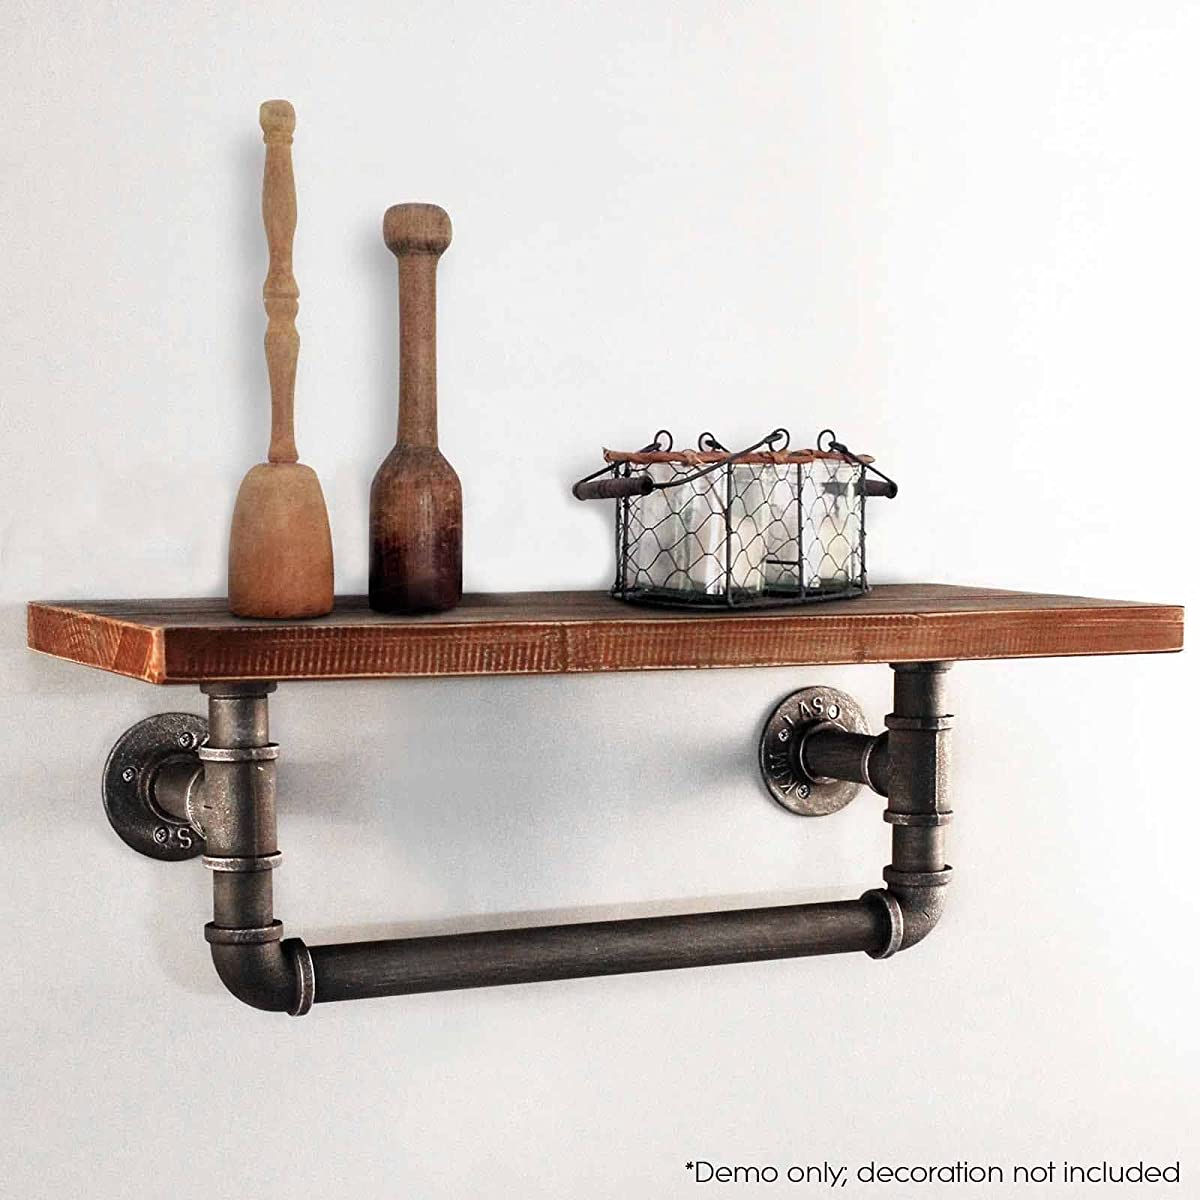 Diwhy Industrial Pipe Shelf Shelving Pine Wood and Pipe Towel Rack - Multiple shelves (24)